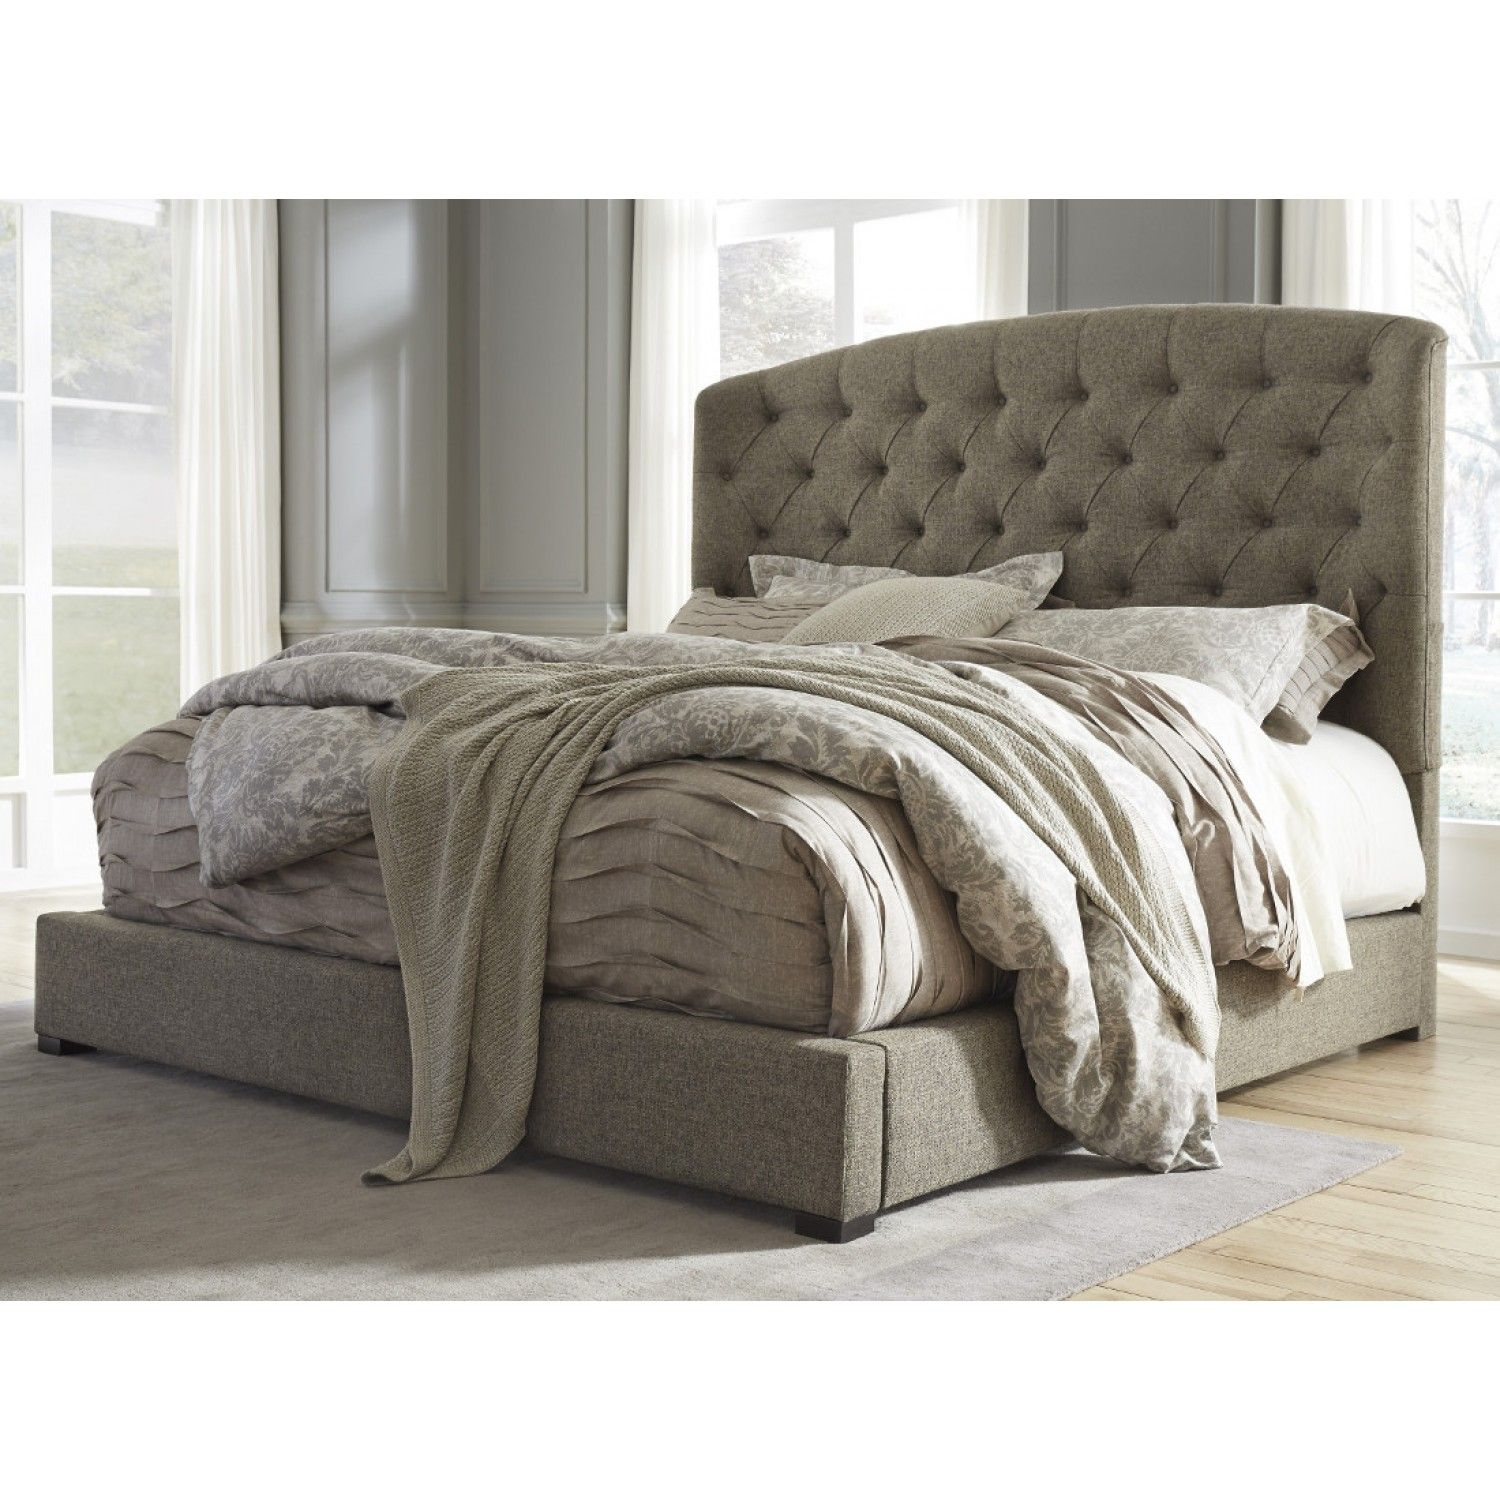 Ashley Furniture Gerlane King Upholstered Bed in Graphite ...